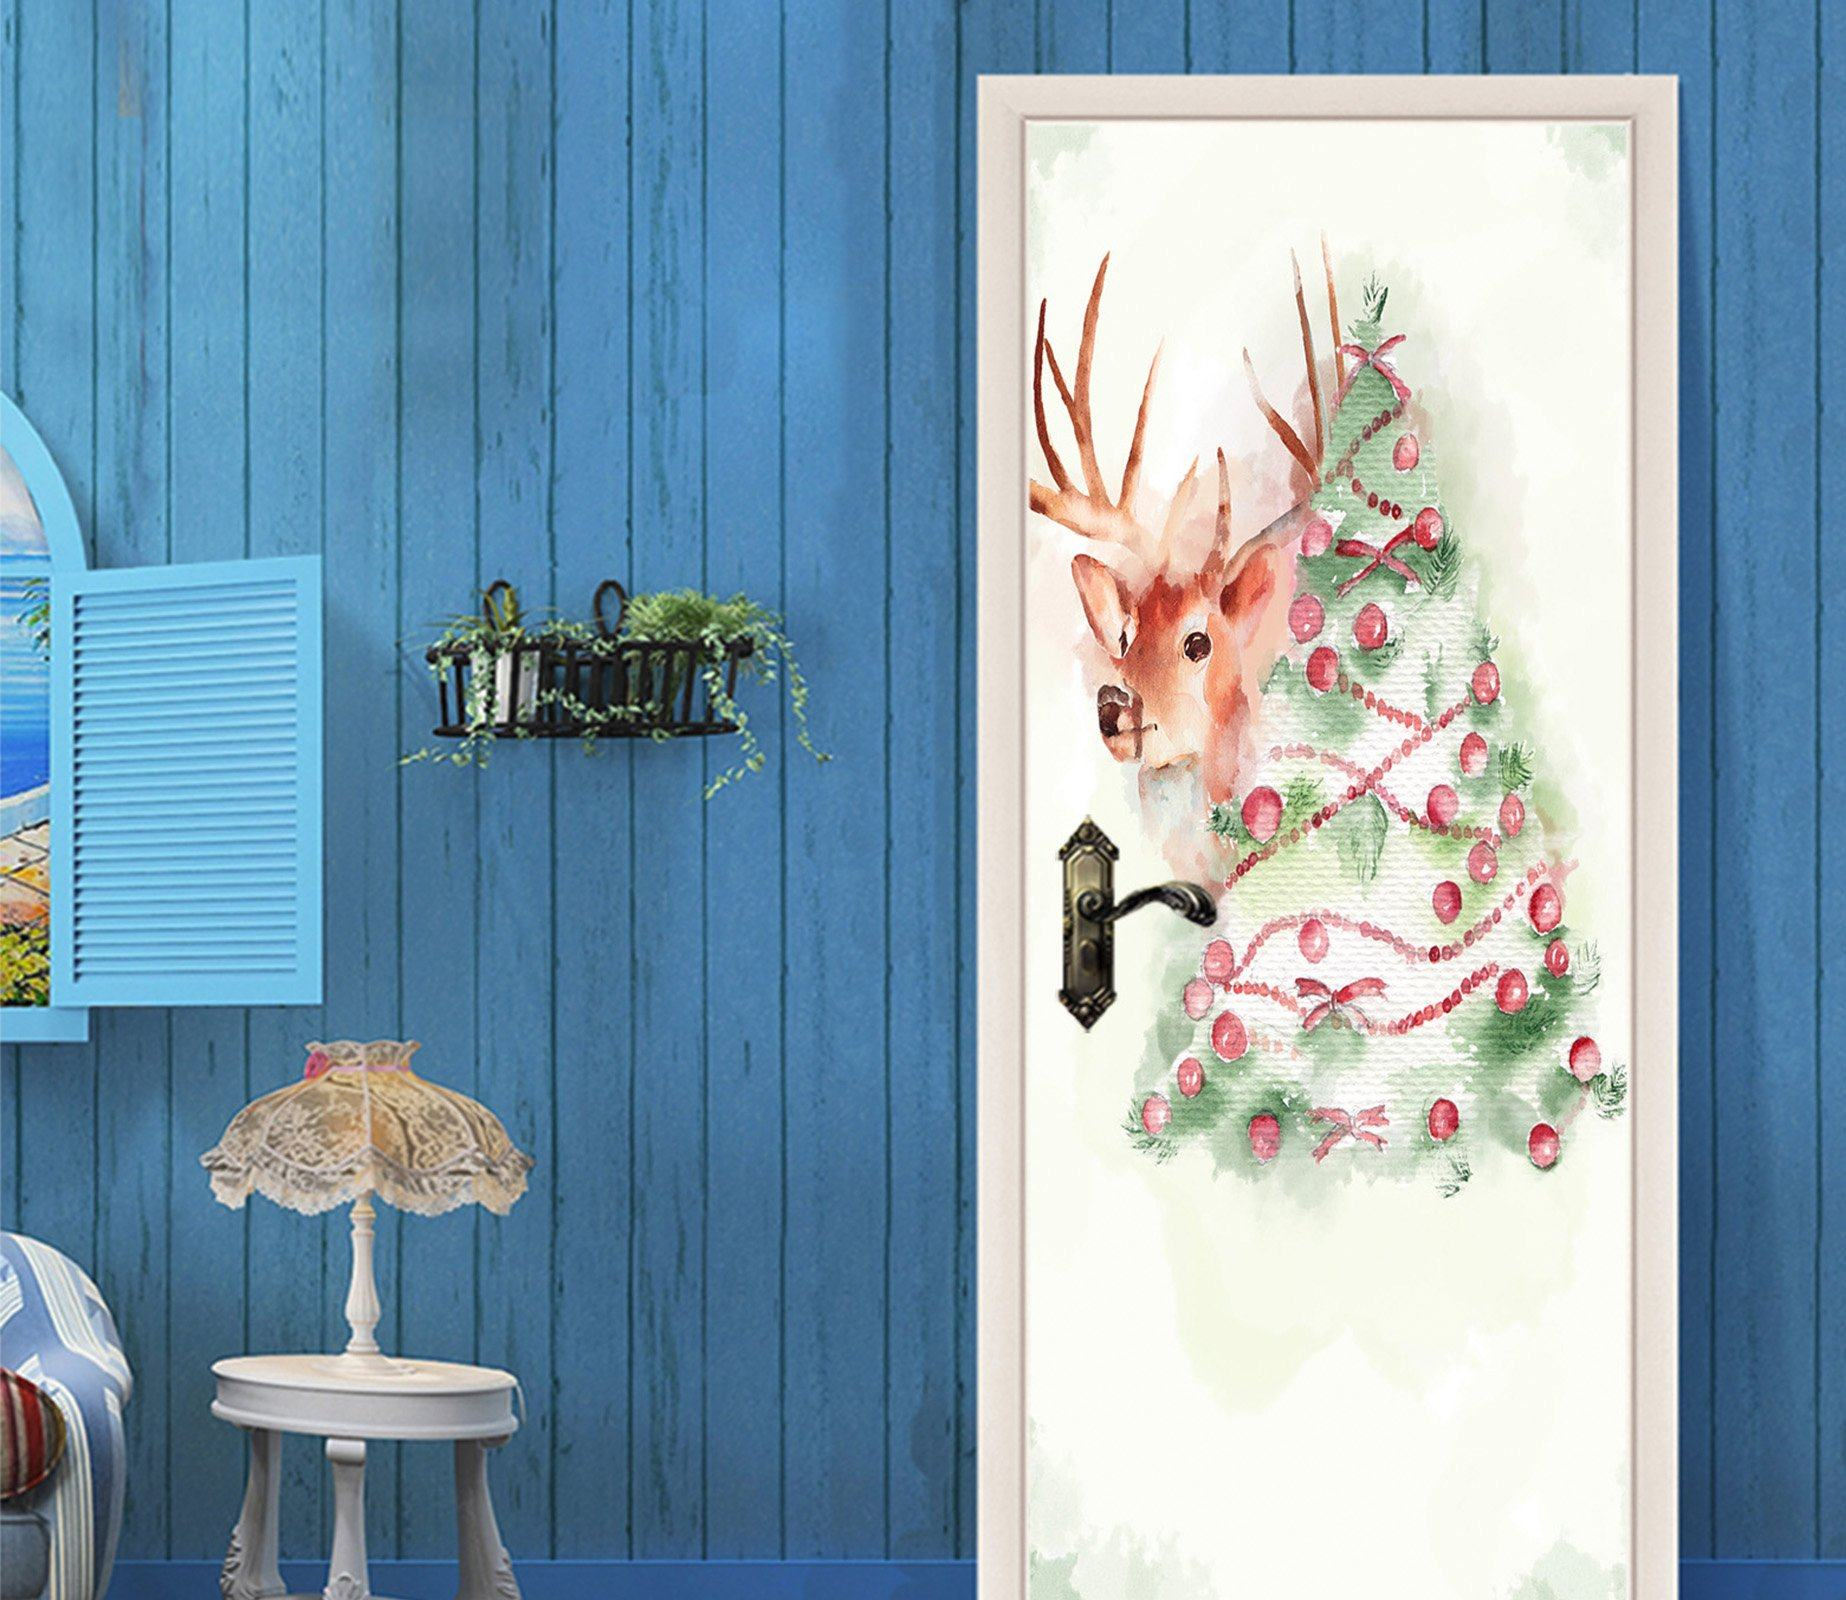 3D Christmas Xmas Tree 2 Door Mural Wallpaper AJ Wallpaper